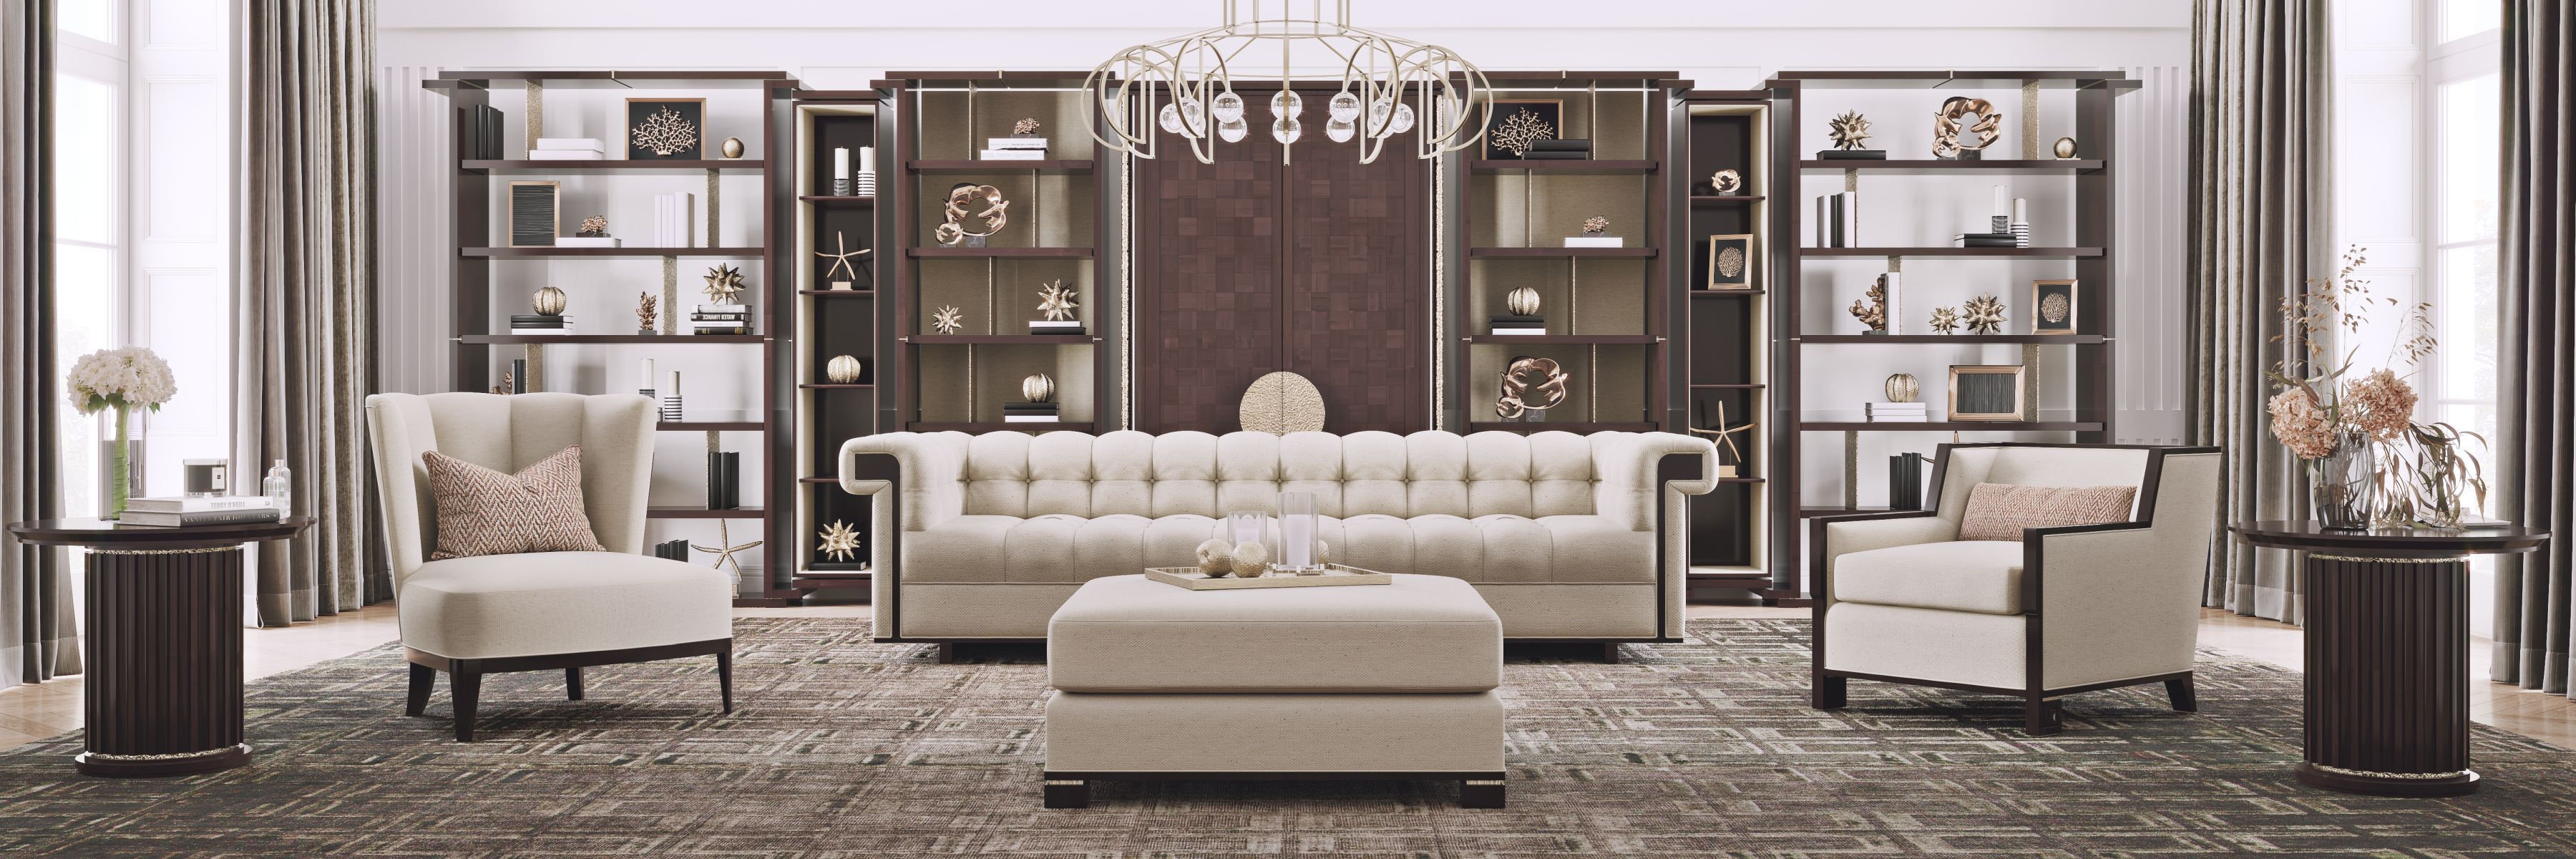 Mobilier Shepel - Living William & Sofa